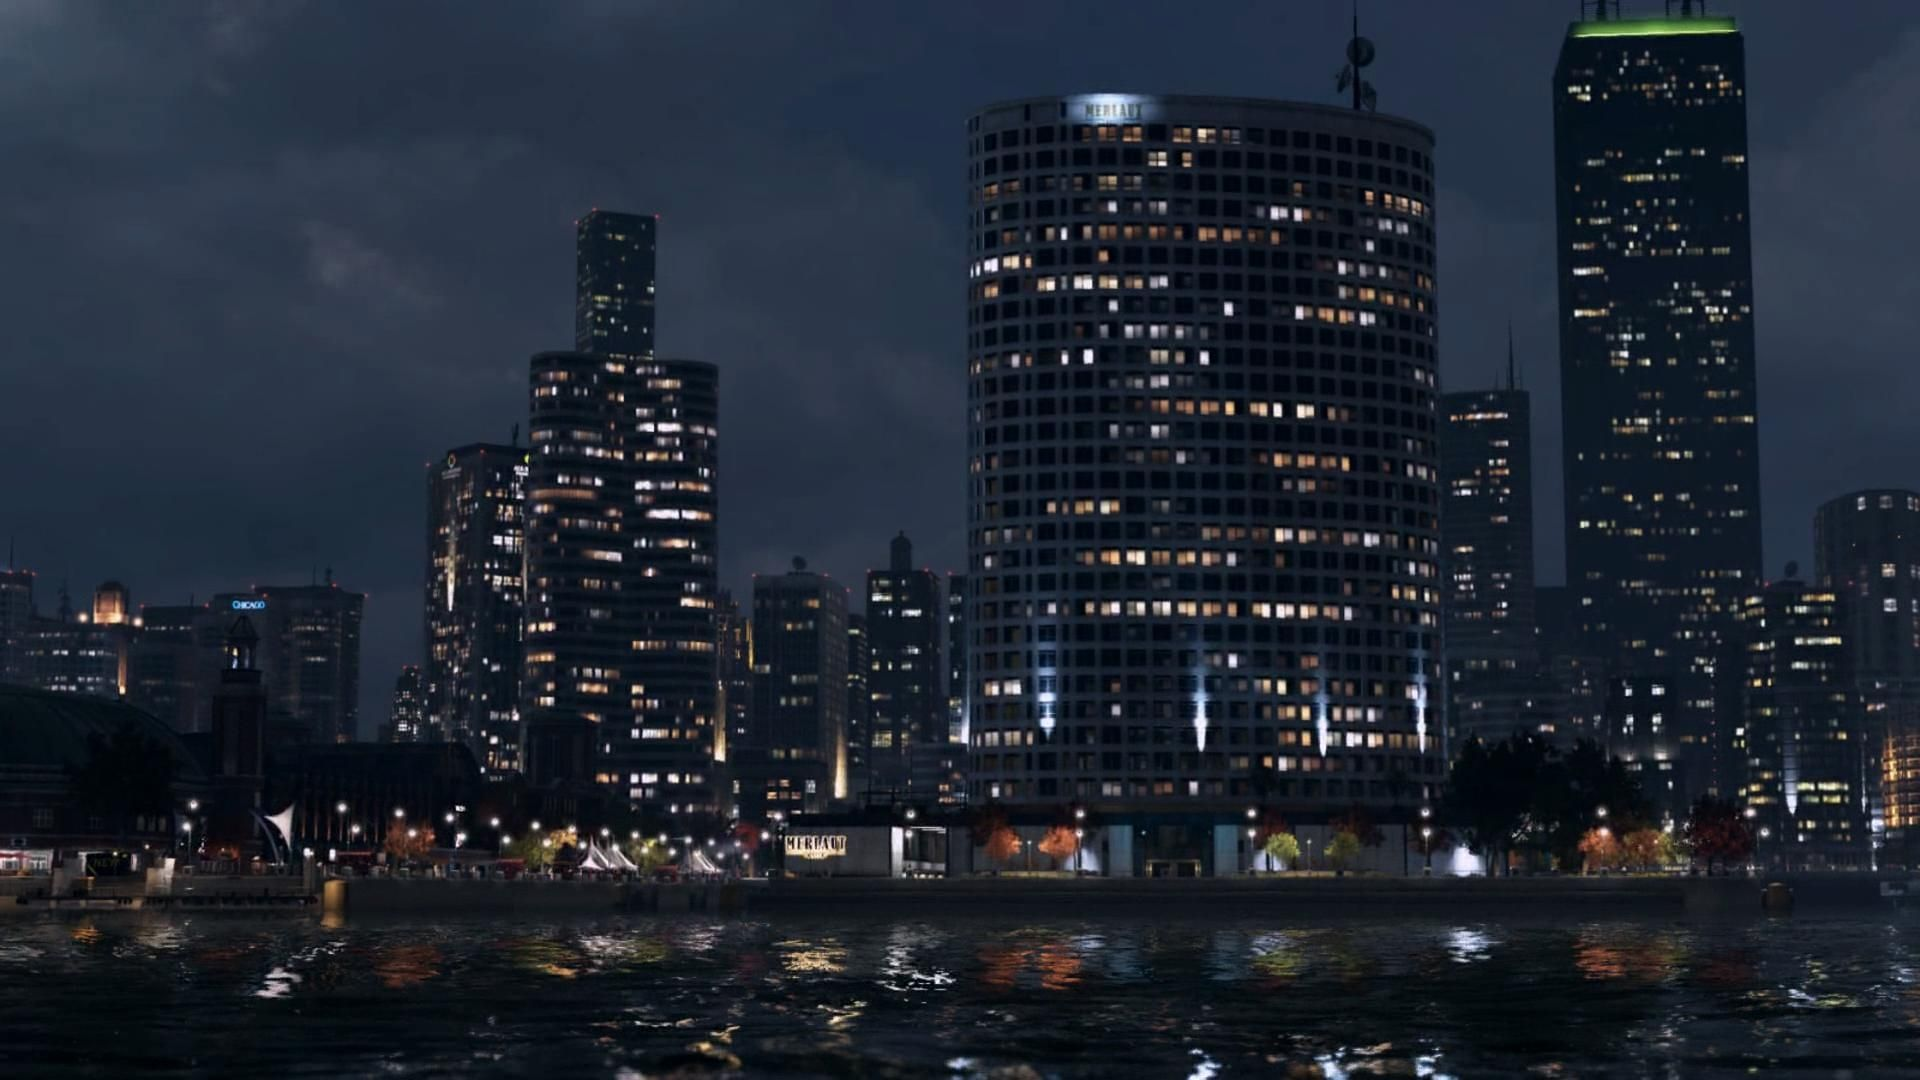 Watch Dogs City Wallpapers - Top Free Watch Dogs City